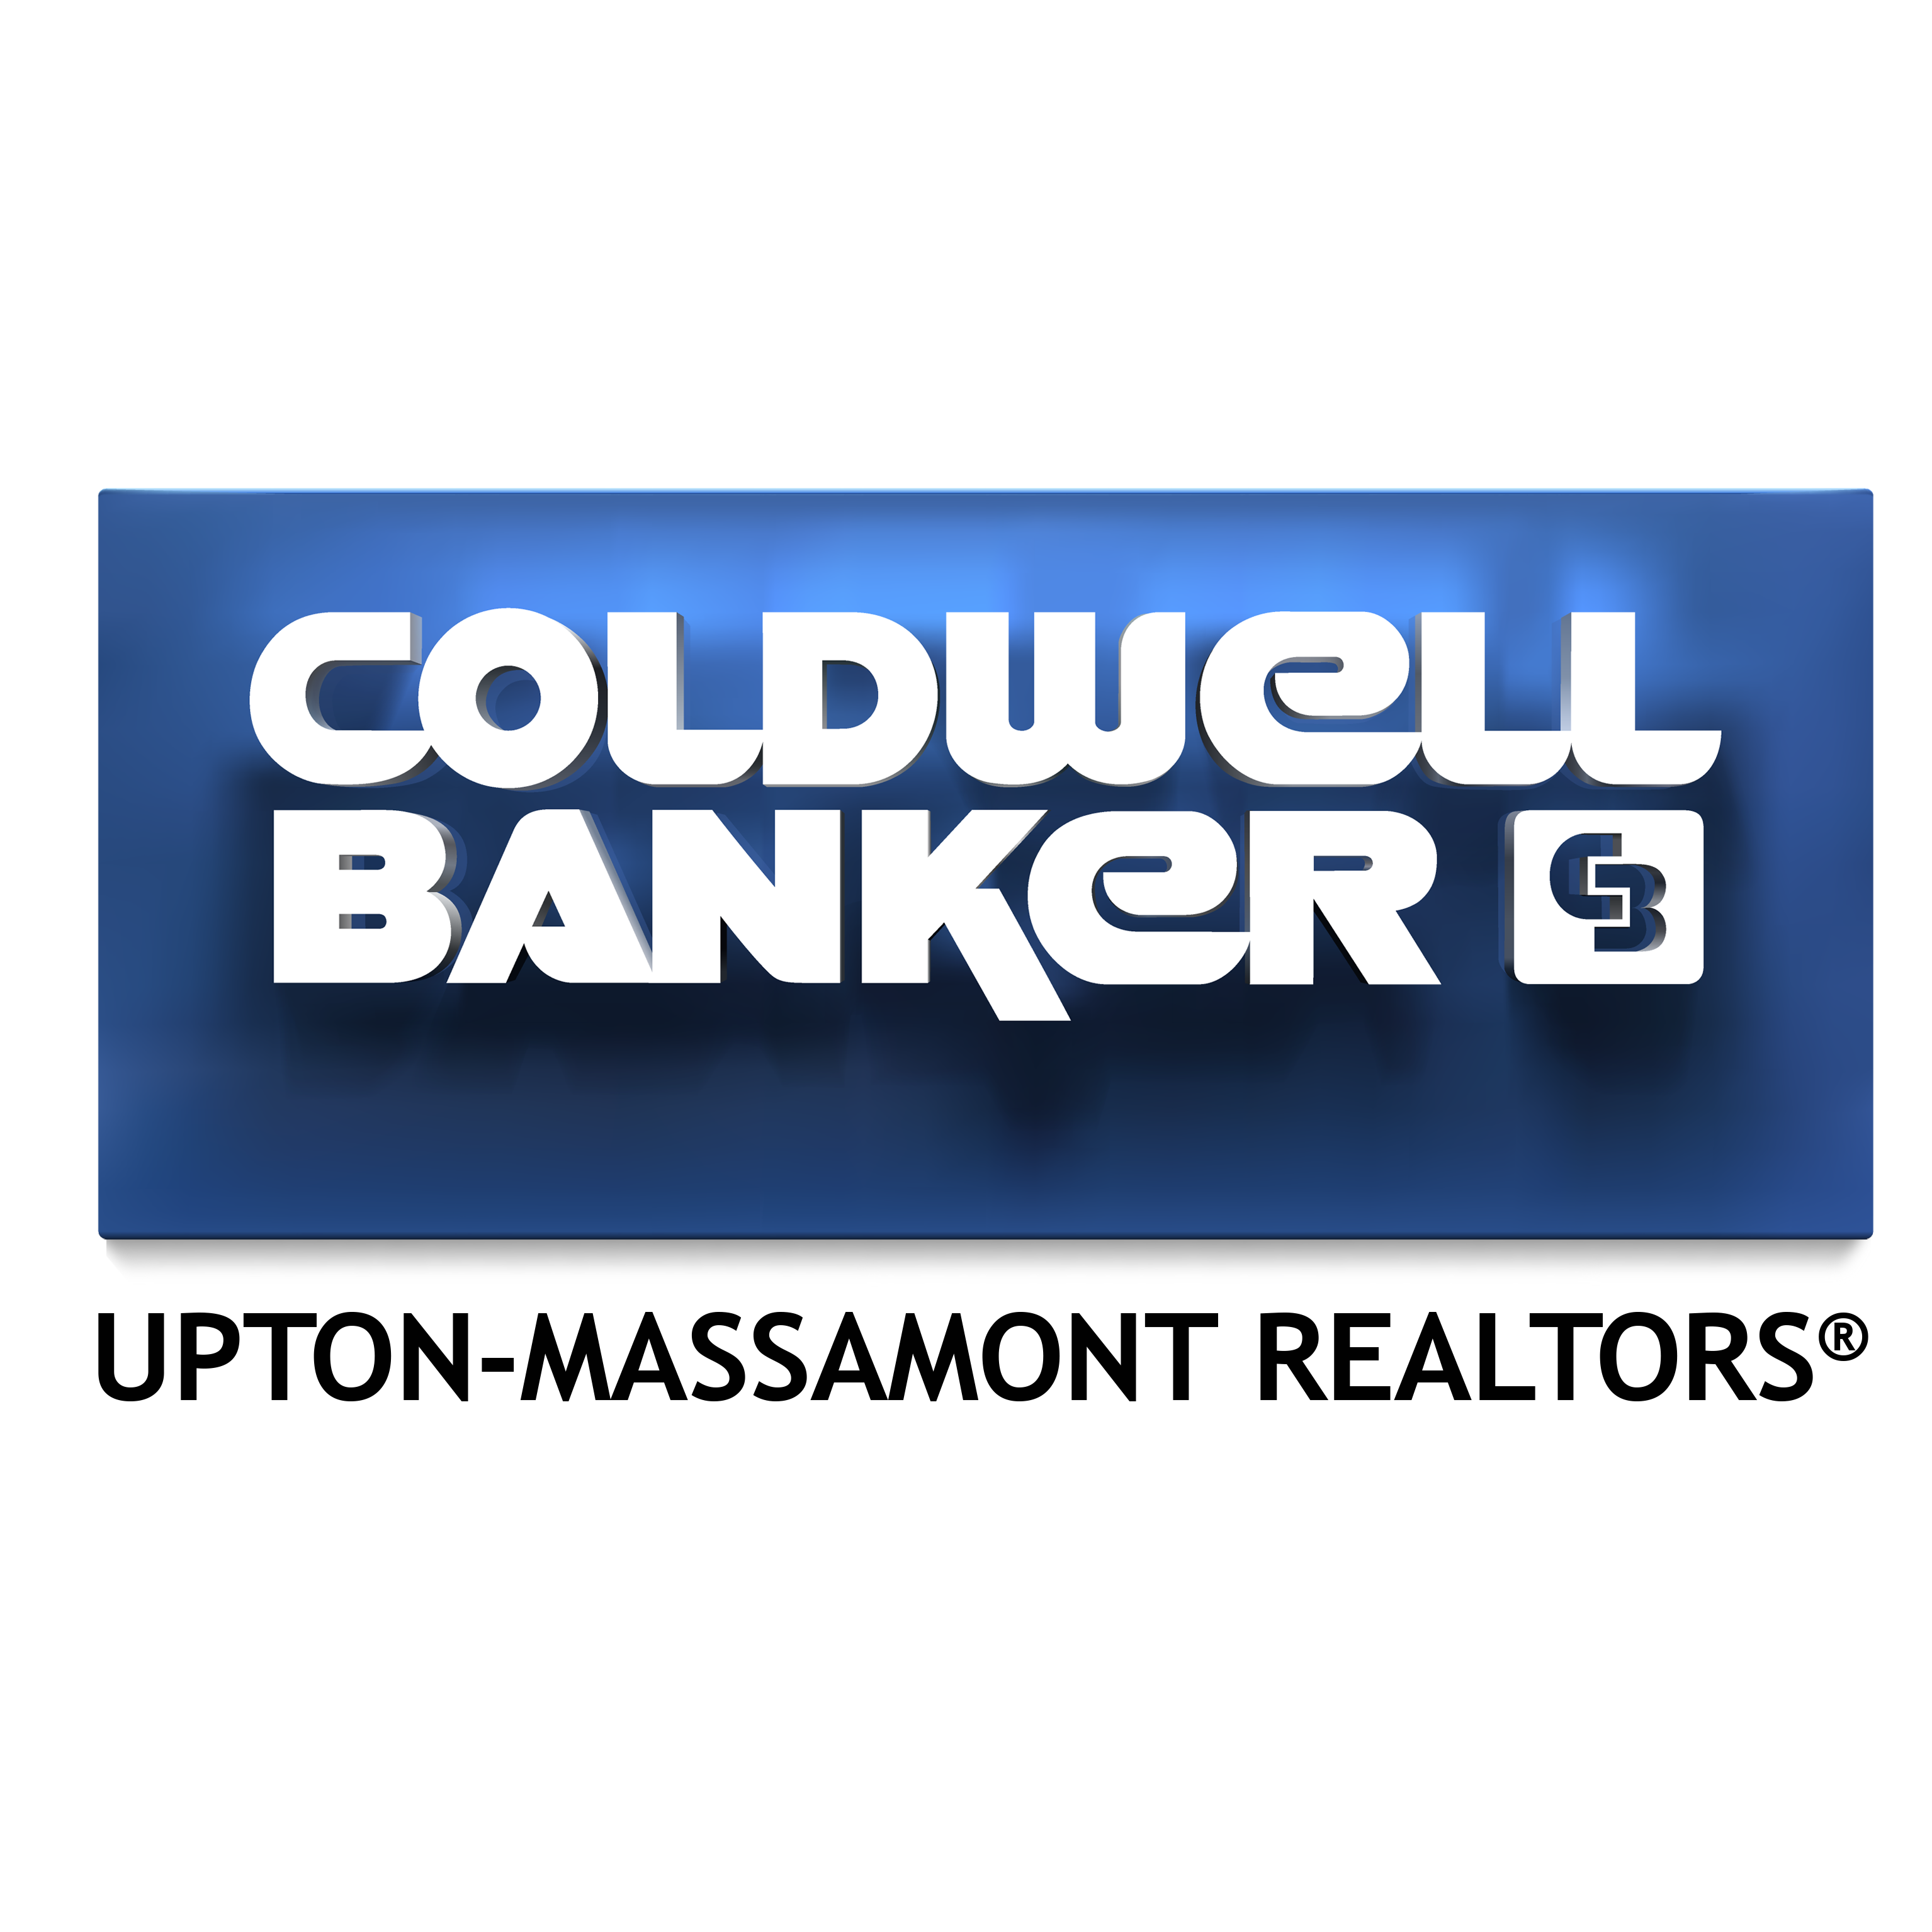 Coldwell Banker Upton-Massamont Realtors - South Deerfield, MA - Real Estate Agents